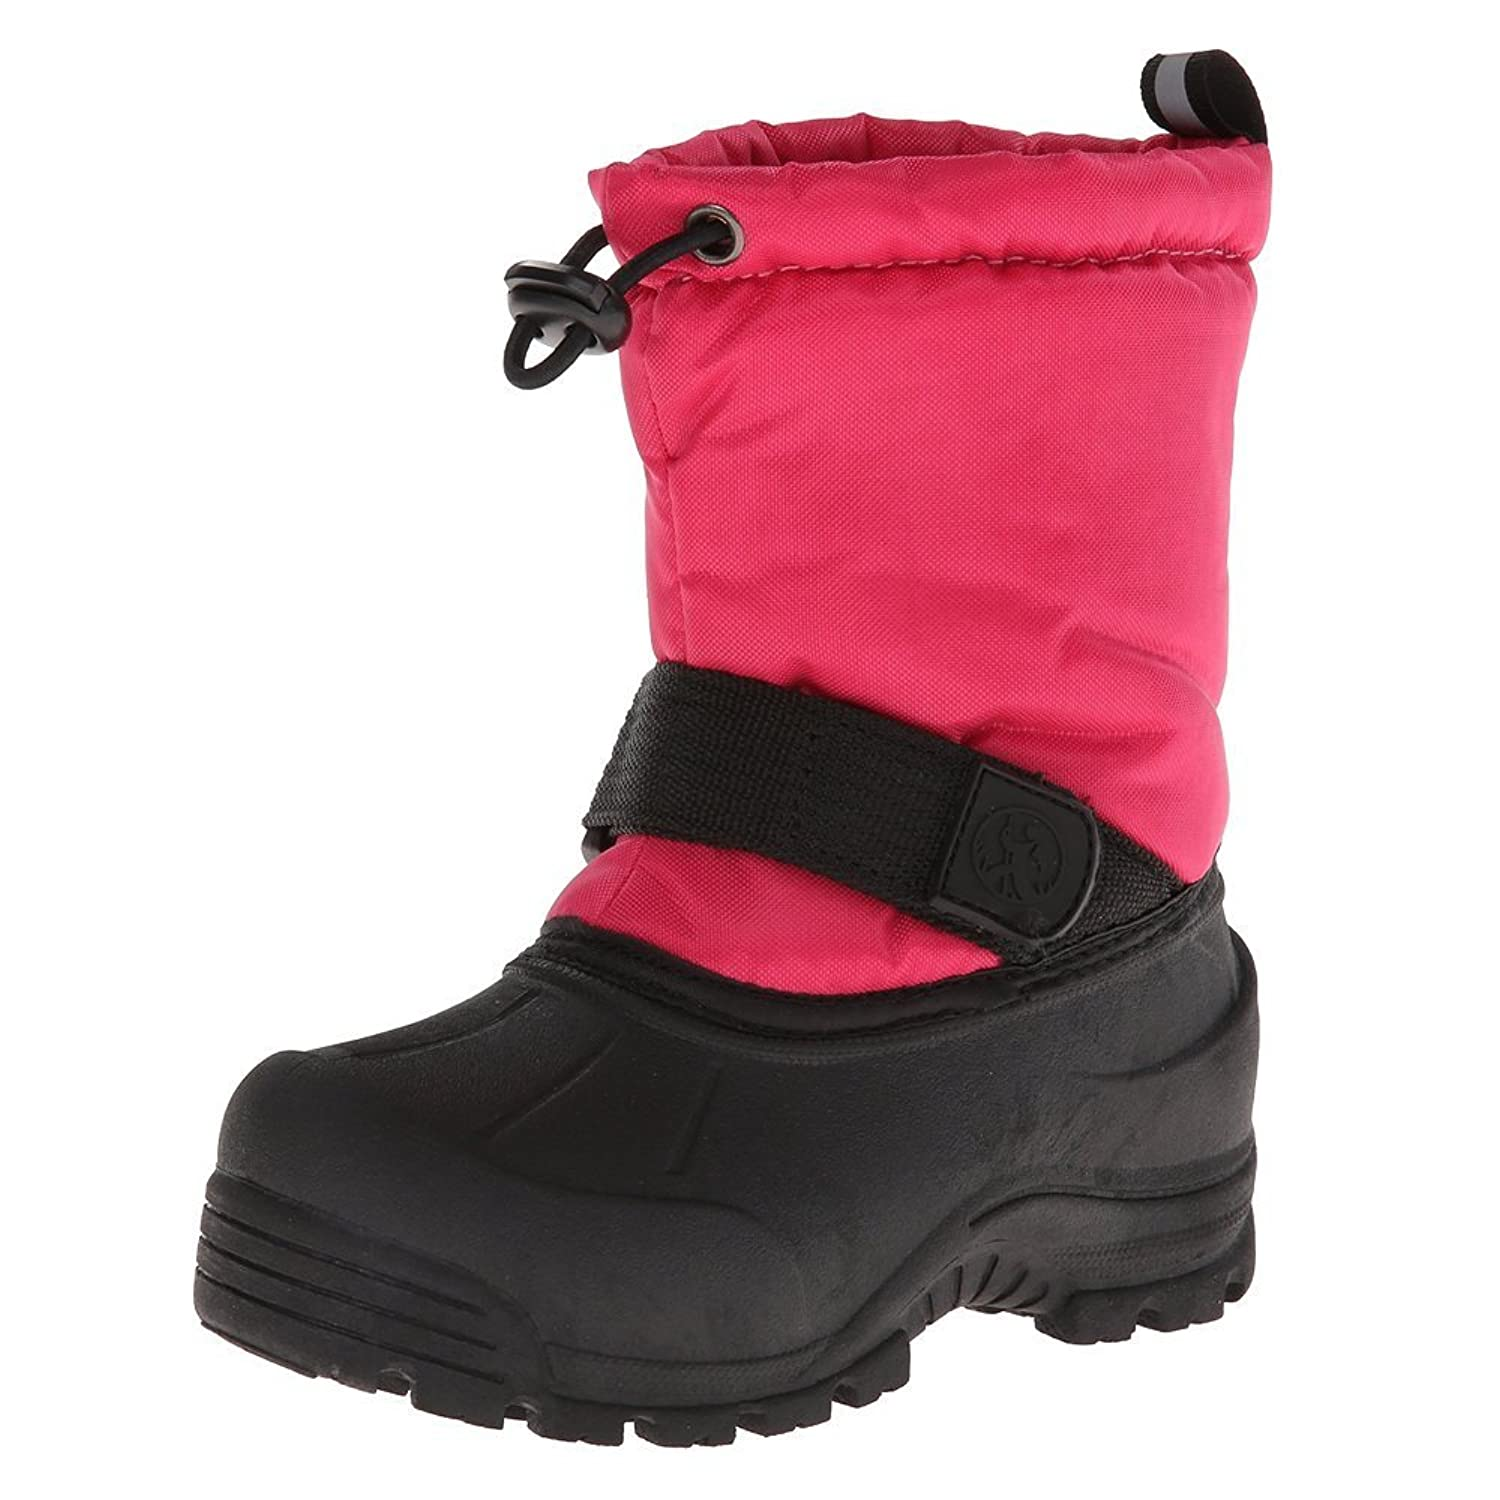 Northside Frosty Boot Childrens rubin childrens friendships cloth